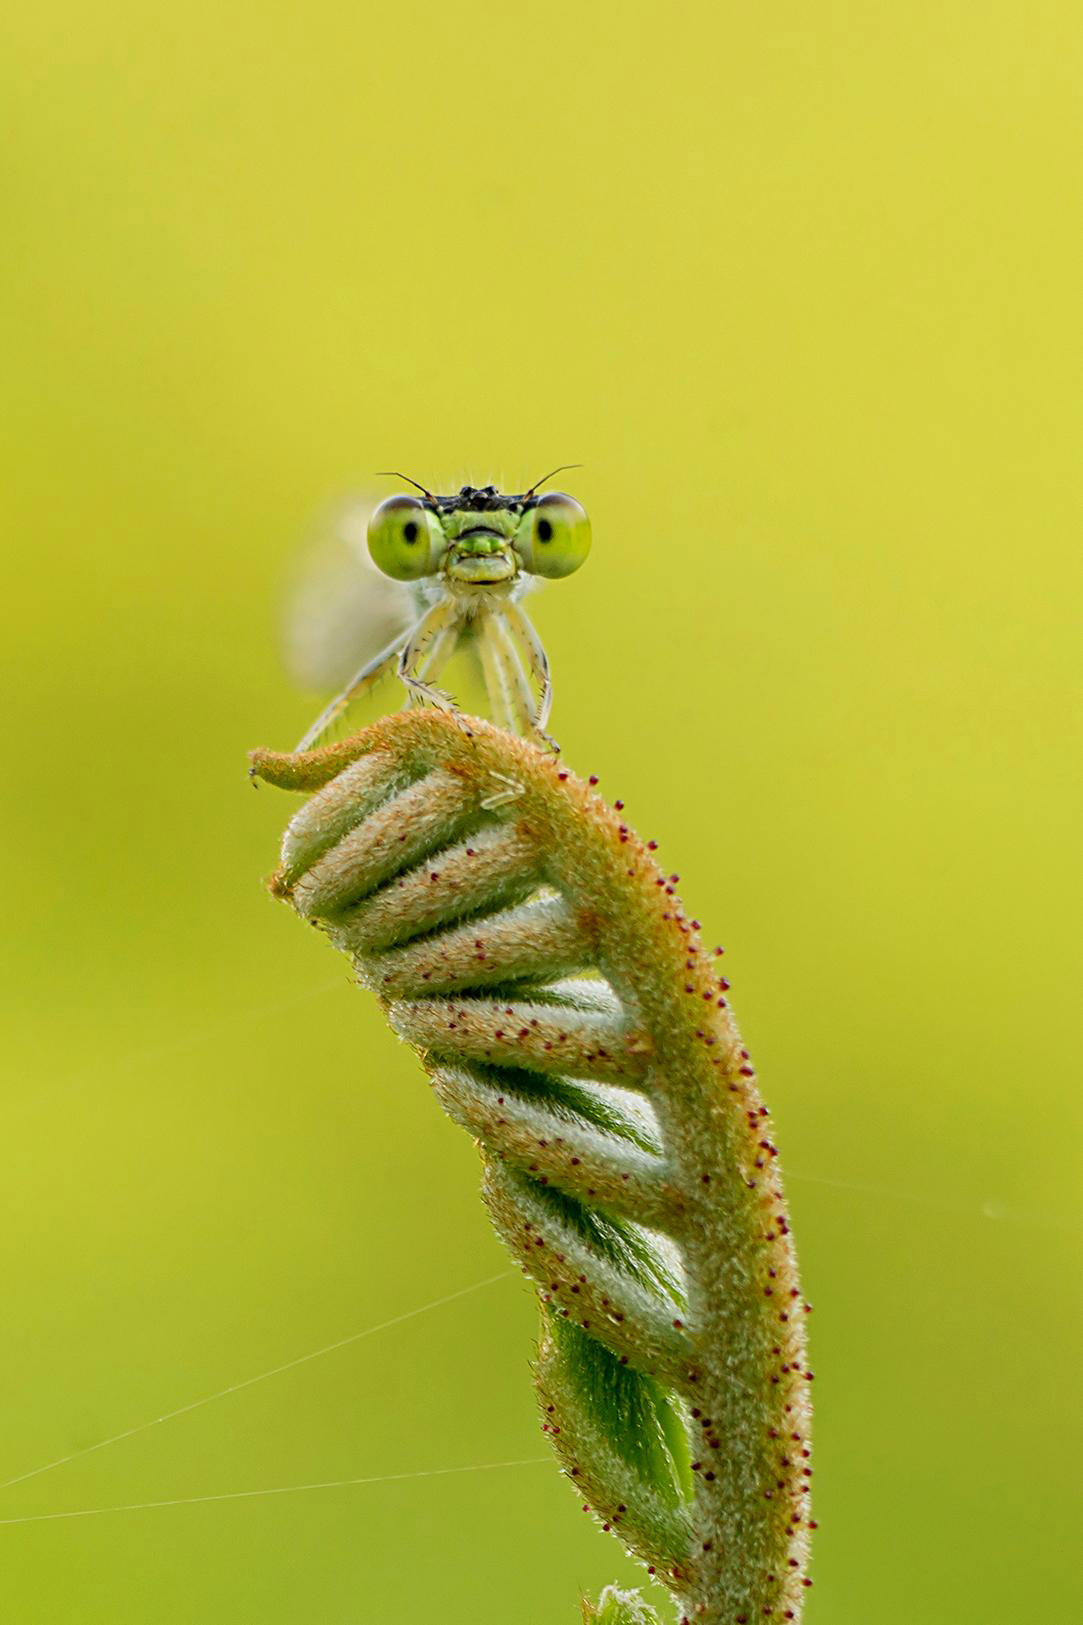 Beautiful Damselfly in the Garden, © Priyank Dhami, 3rd Welcoming Garden Wildlife Category, RHS Photographic Competition